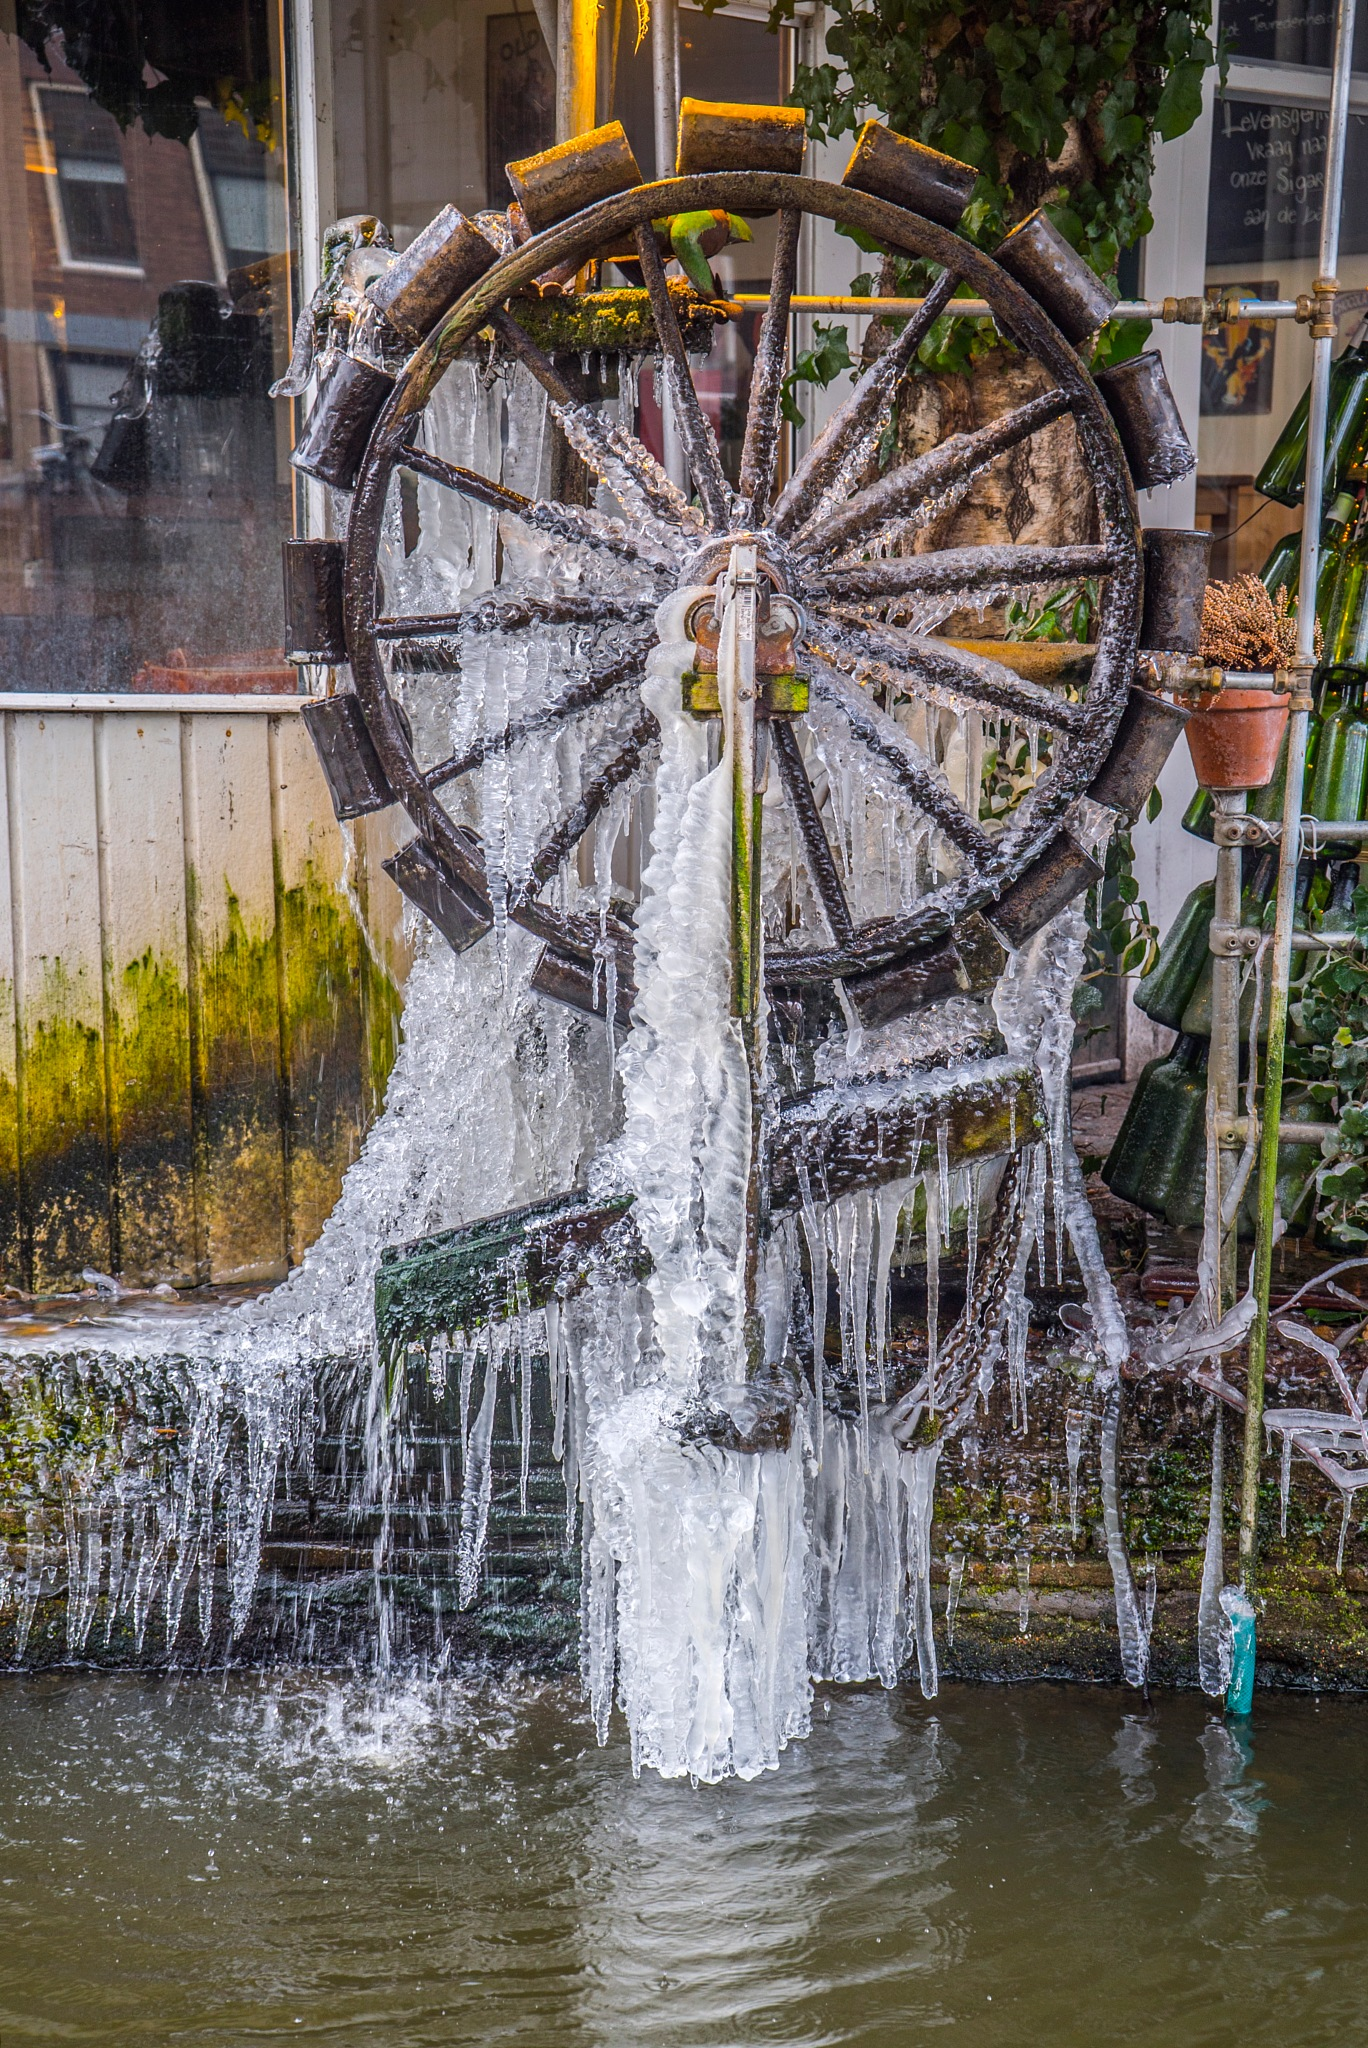 The frozen waterwheel by fred.leeflang.7